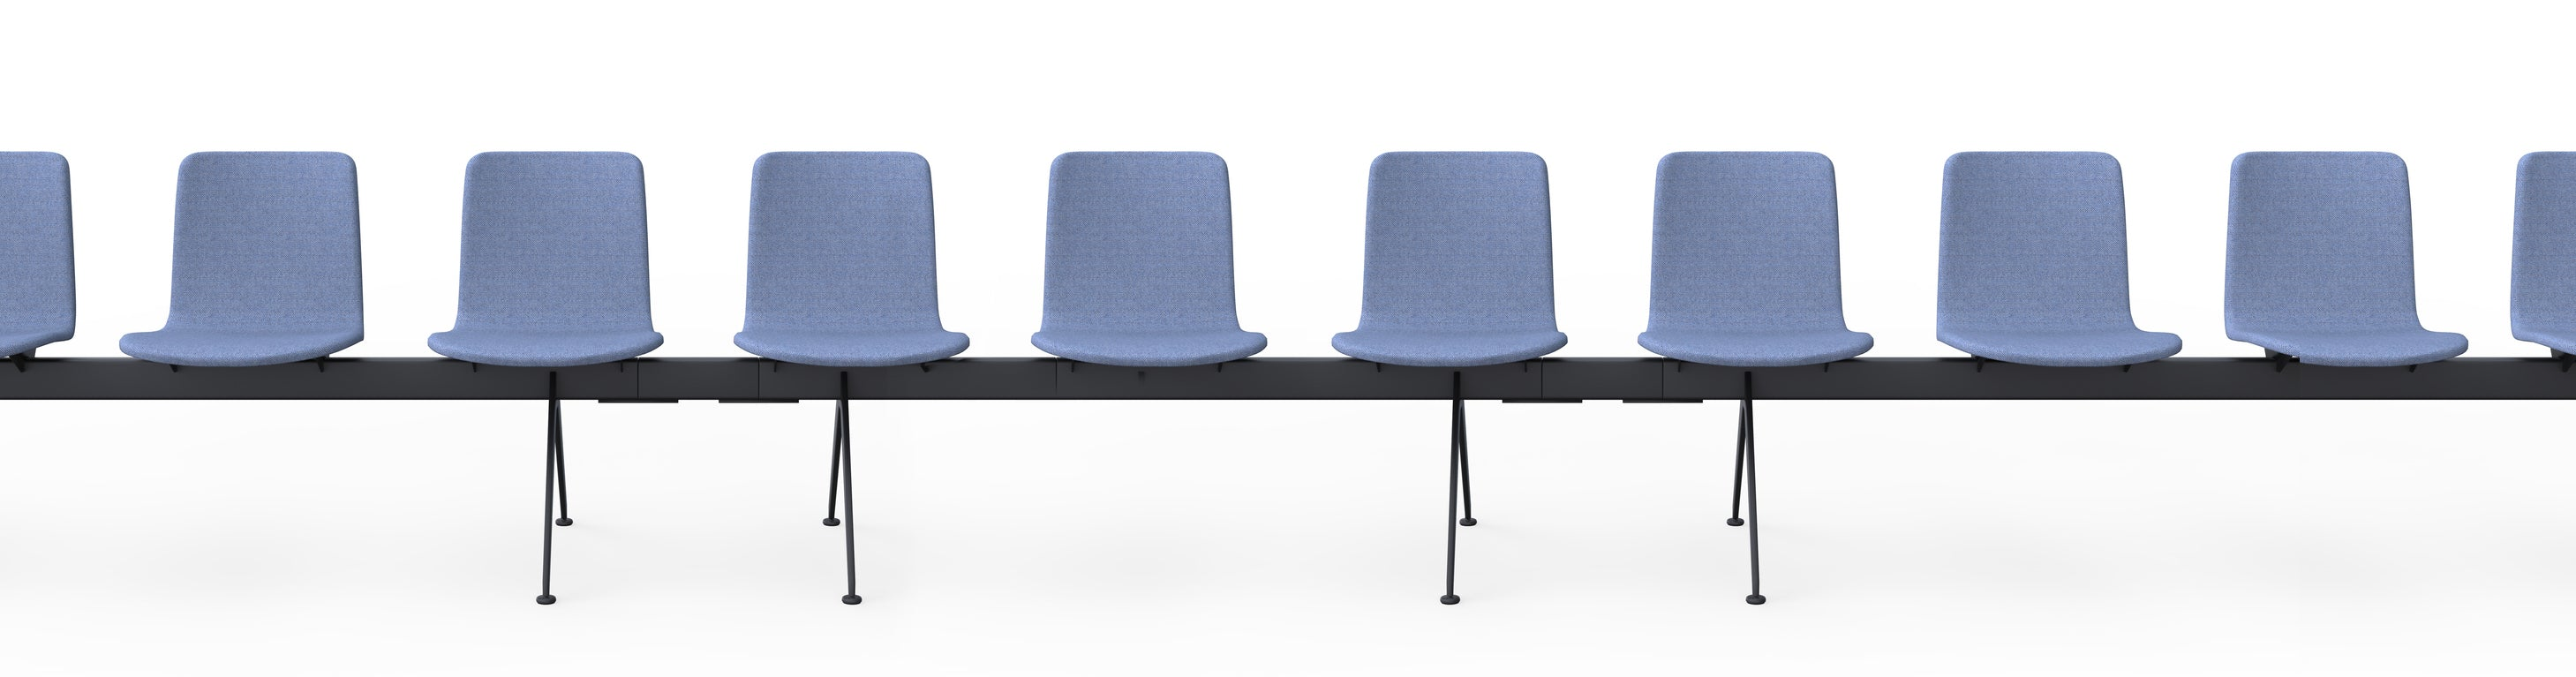 Martela Sola Beam Connected Seating Chair